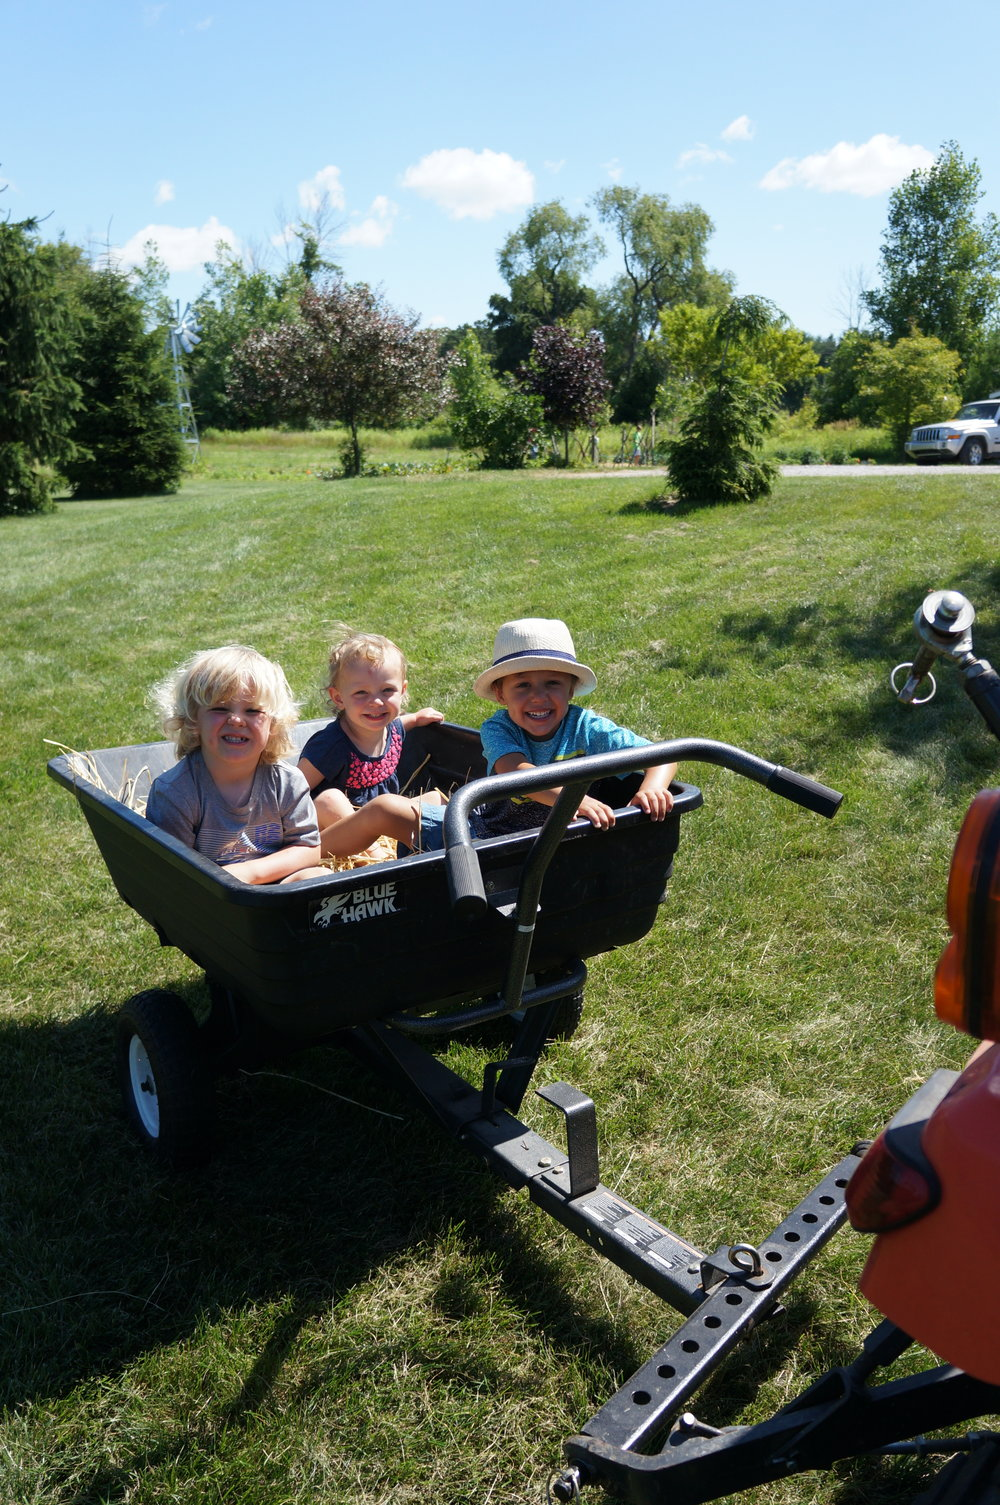 Tractor rides with Toby - Thomas, Rezzie, and Bennett